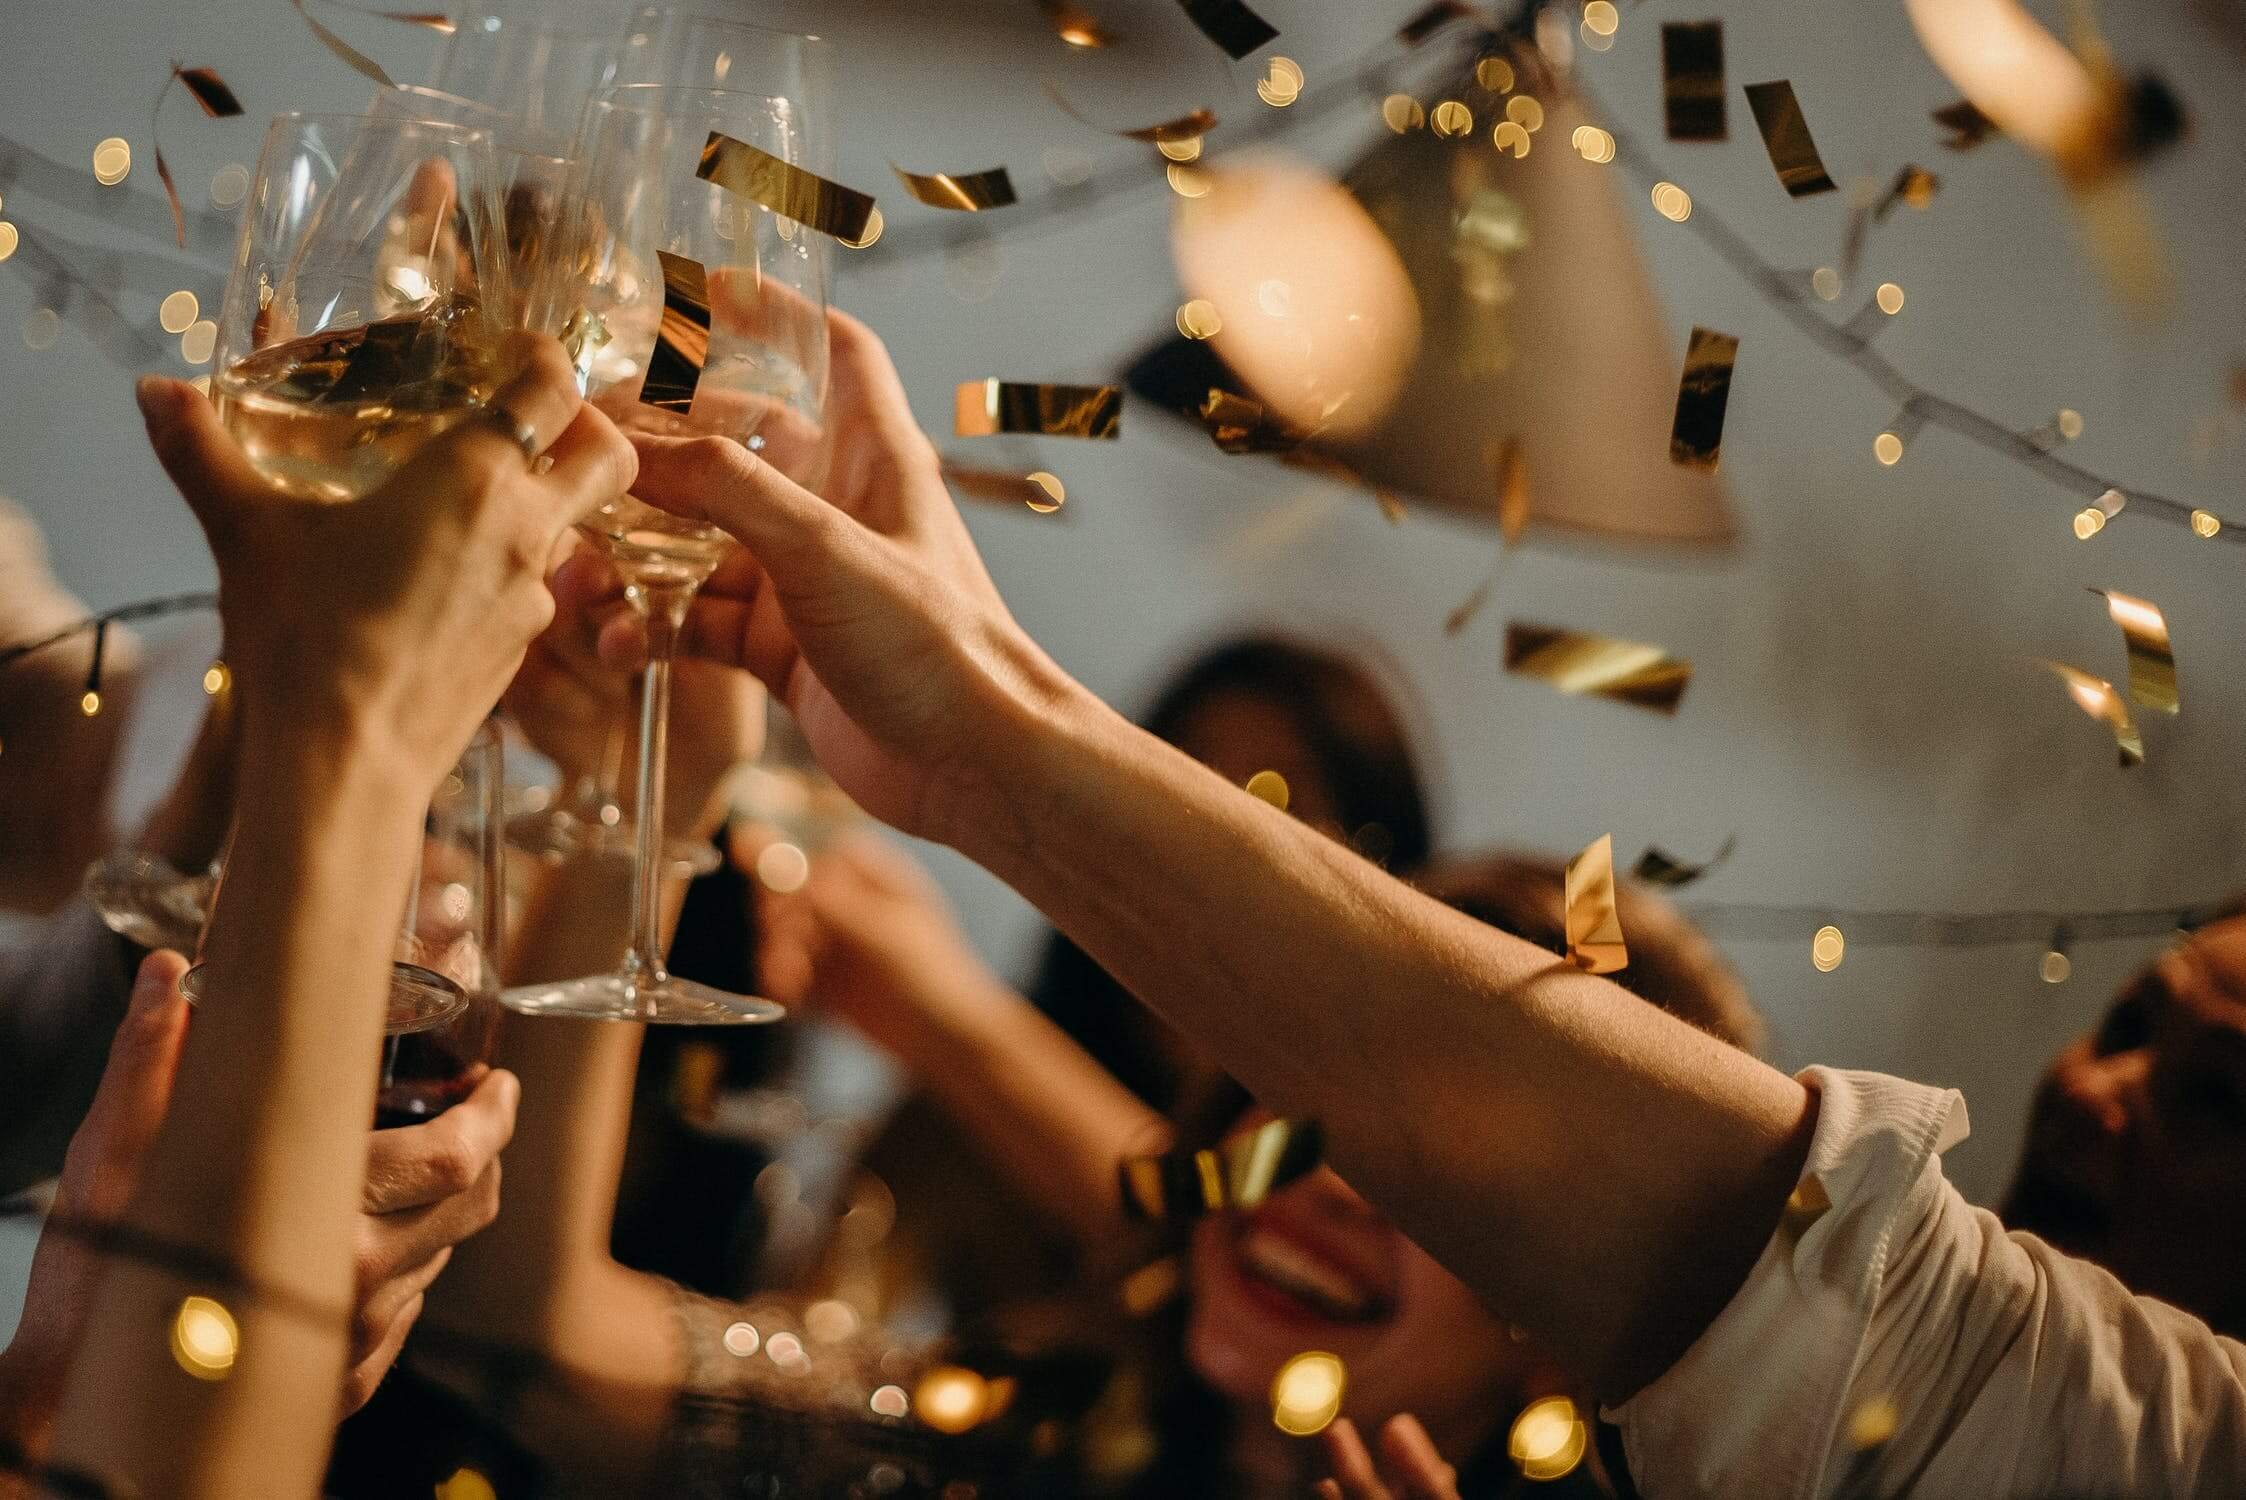 Hands clinking together champagne glasses with gold confetti falling